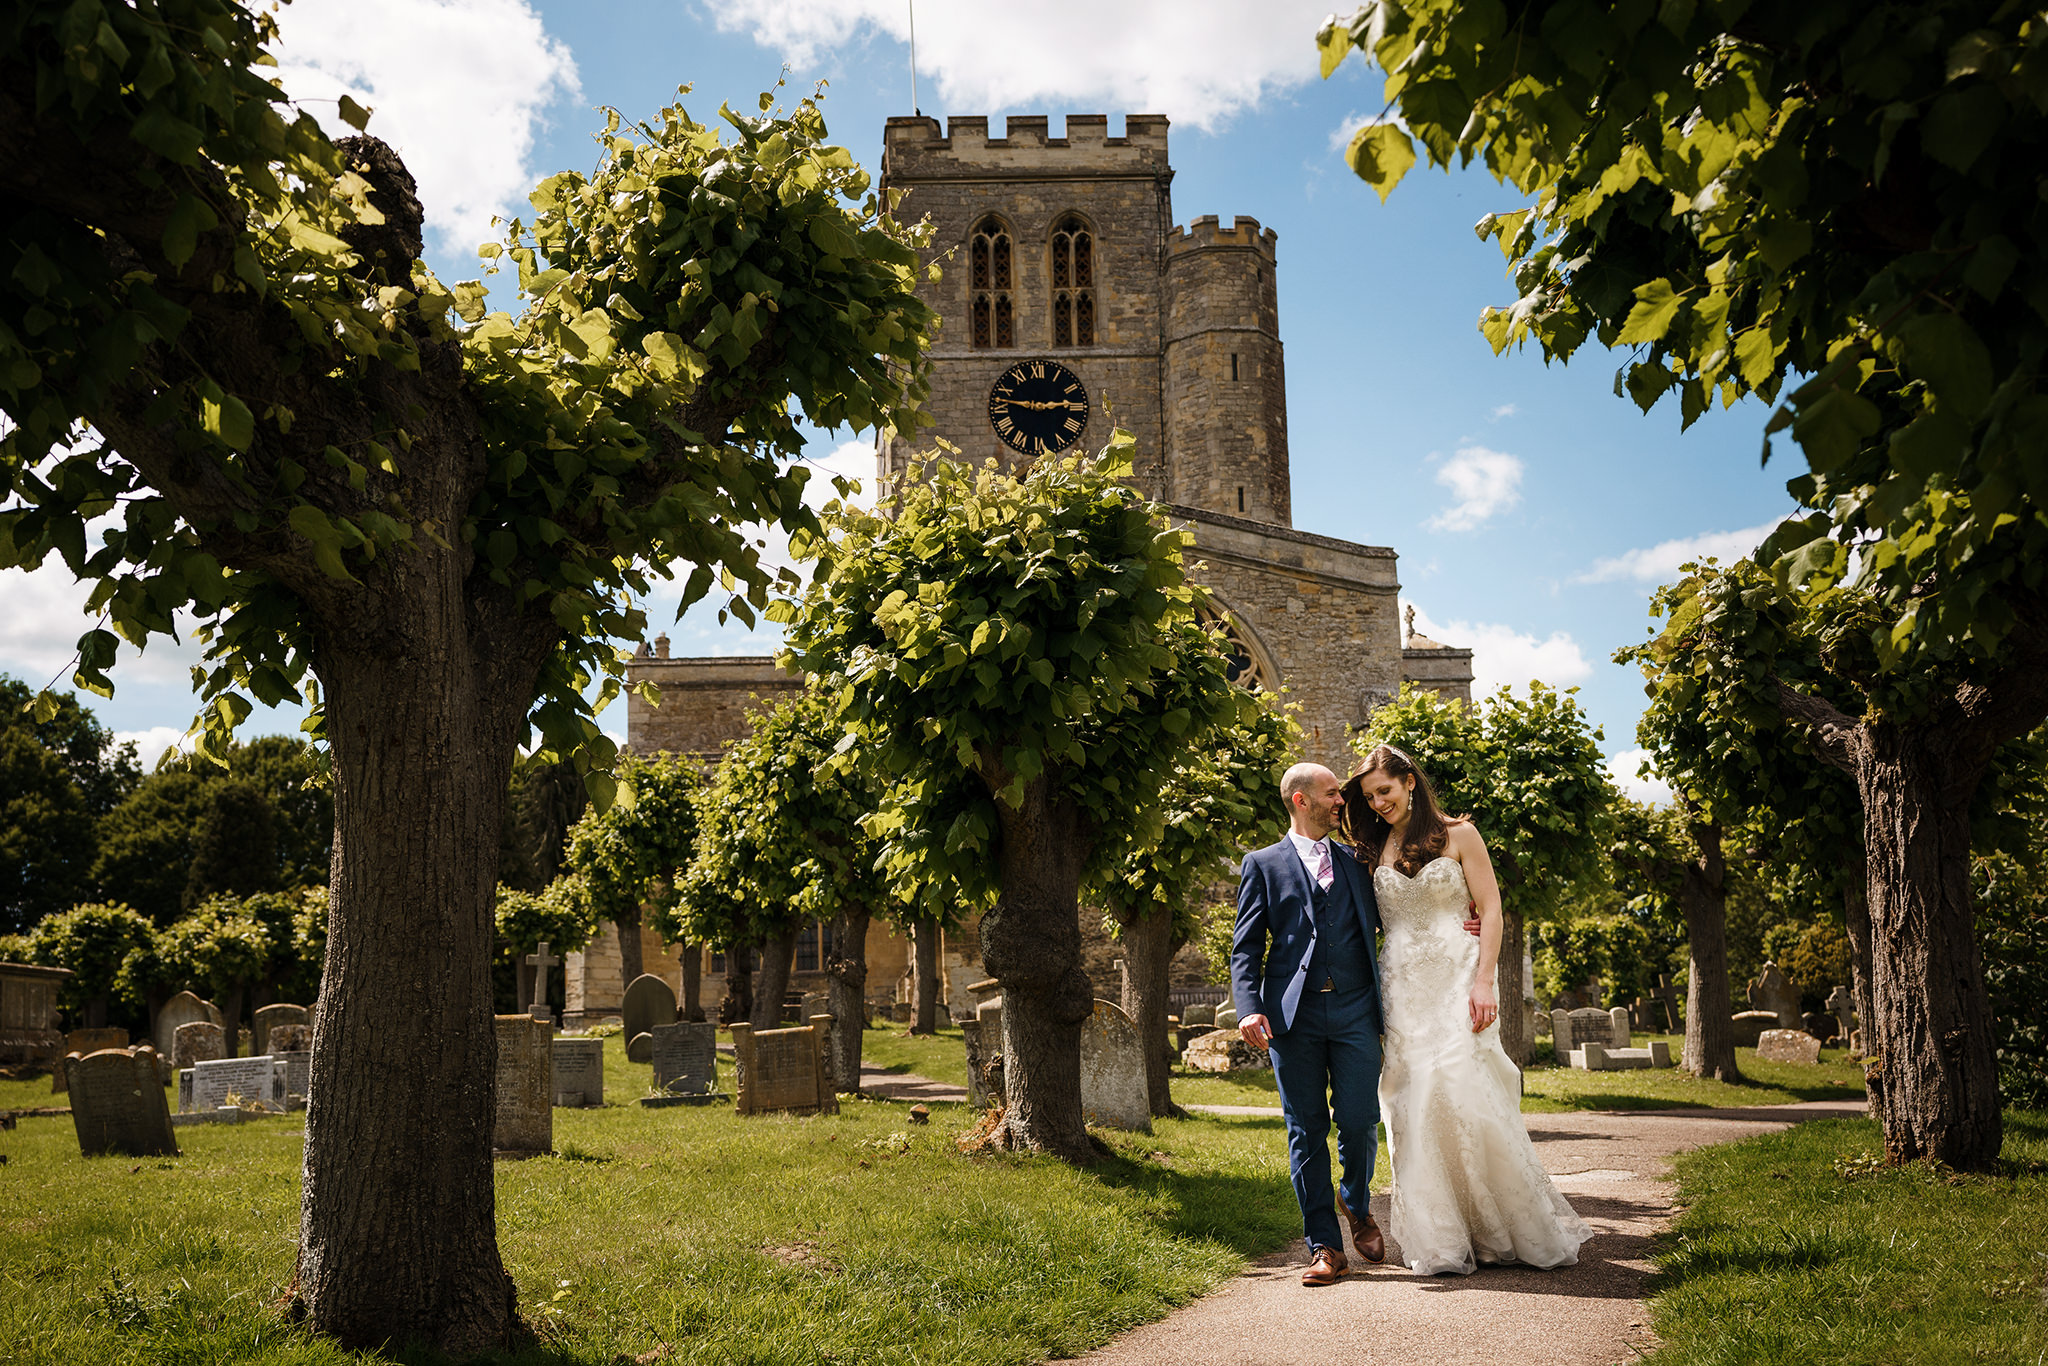 Wedding Gallery - Thame, Oxfordshire